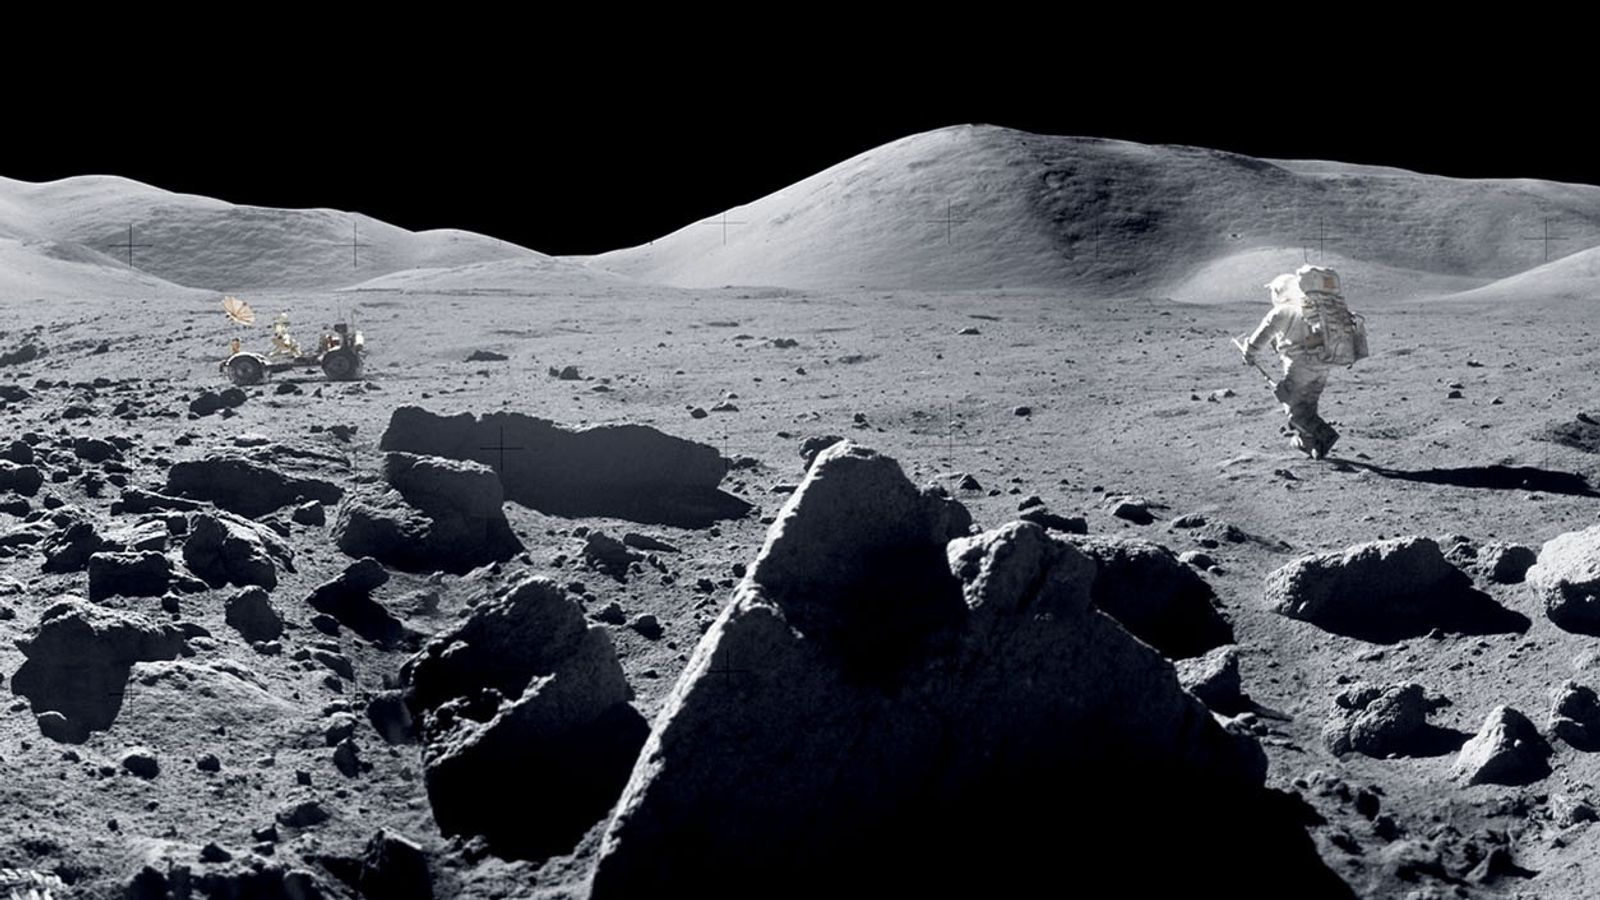 Astronaut Harrison Schmitt bounds toward the lunar rover during the Apollo 17 mission in December 1972, ...